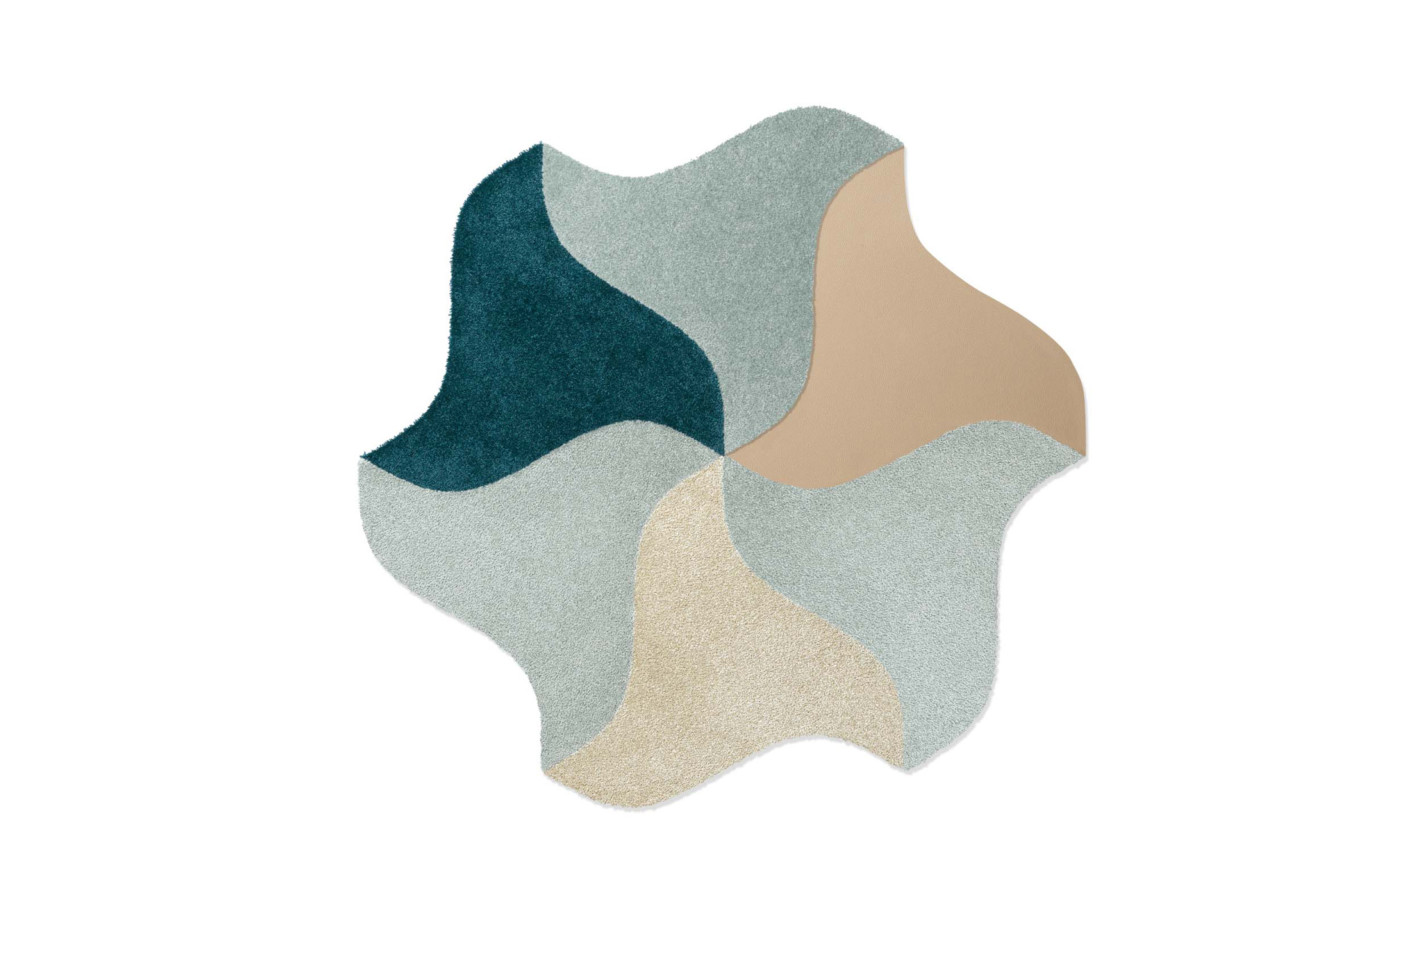 BLOOM Tiles Have An Organic Look And Can Be Combined In The Room To